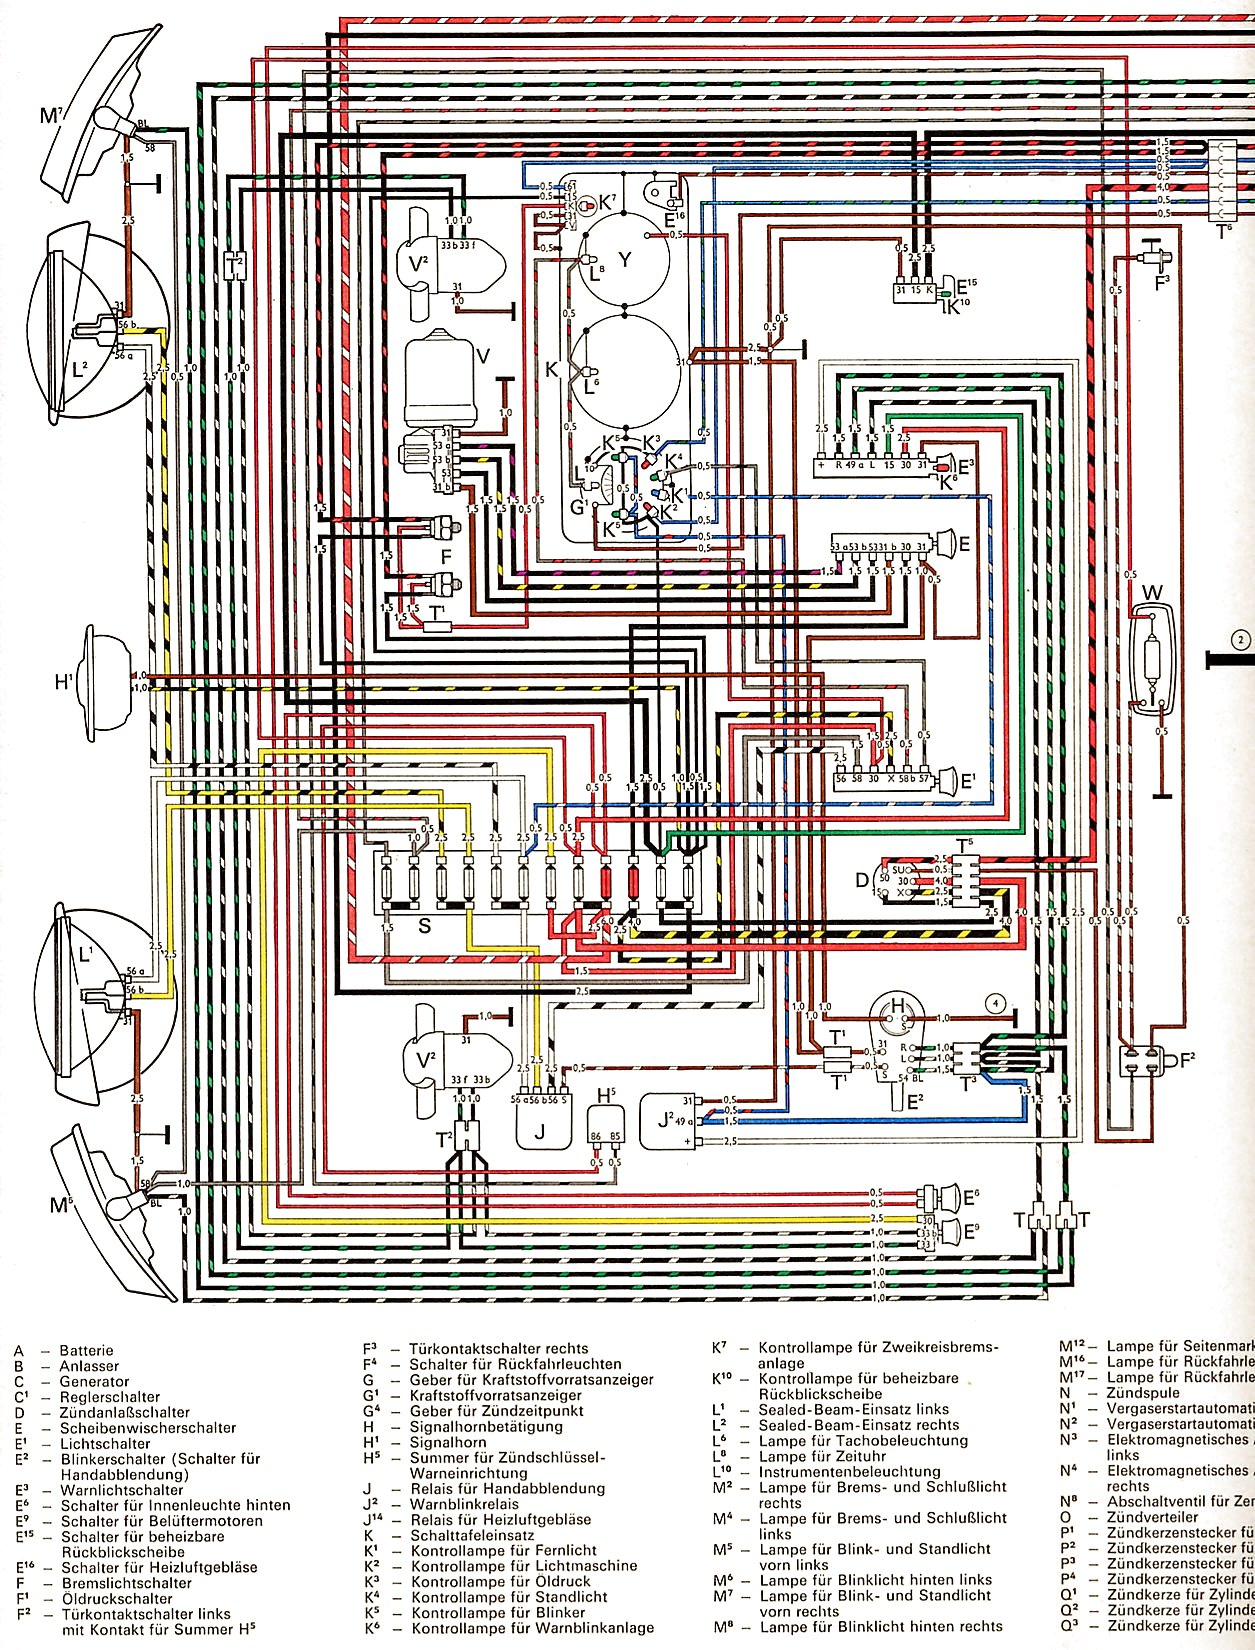 Vw Bus And Other Wiring Diagrams 2000 Jetta 2 0 Engine Diagram 1972 Usa De Y 1